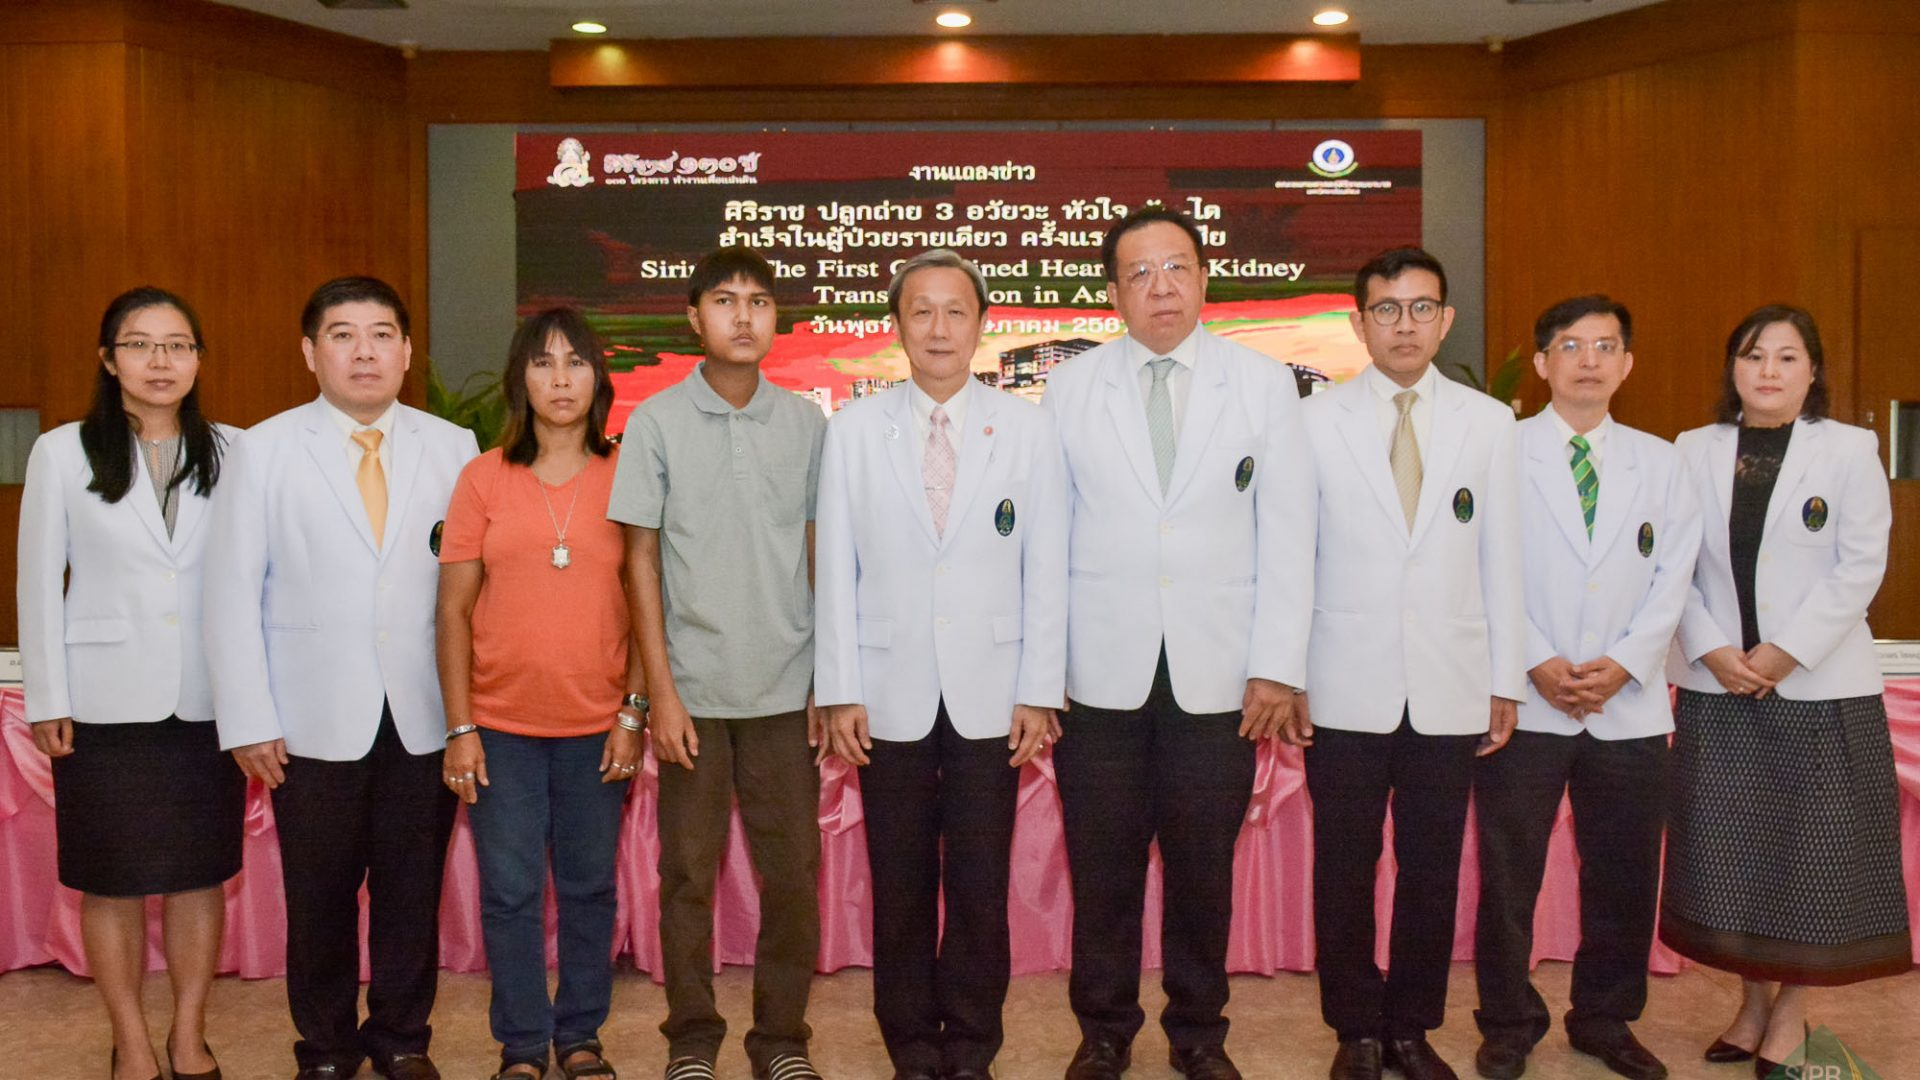 Siriraj Accomplished the Combined Heart-Liver-Kidney Transplantation in One Patient for the First Time in Asia